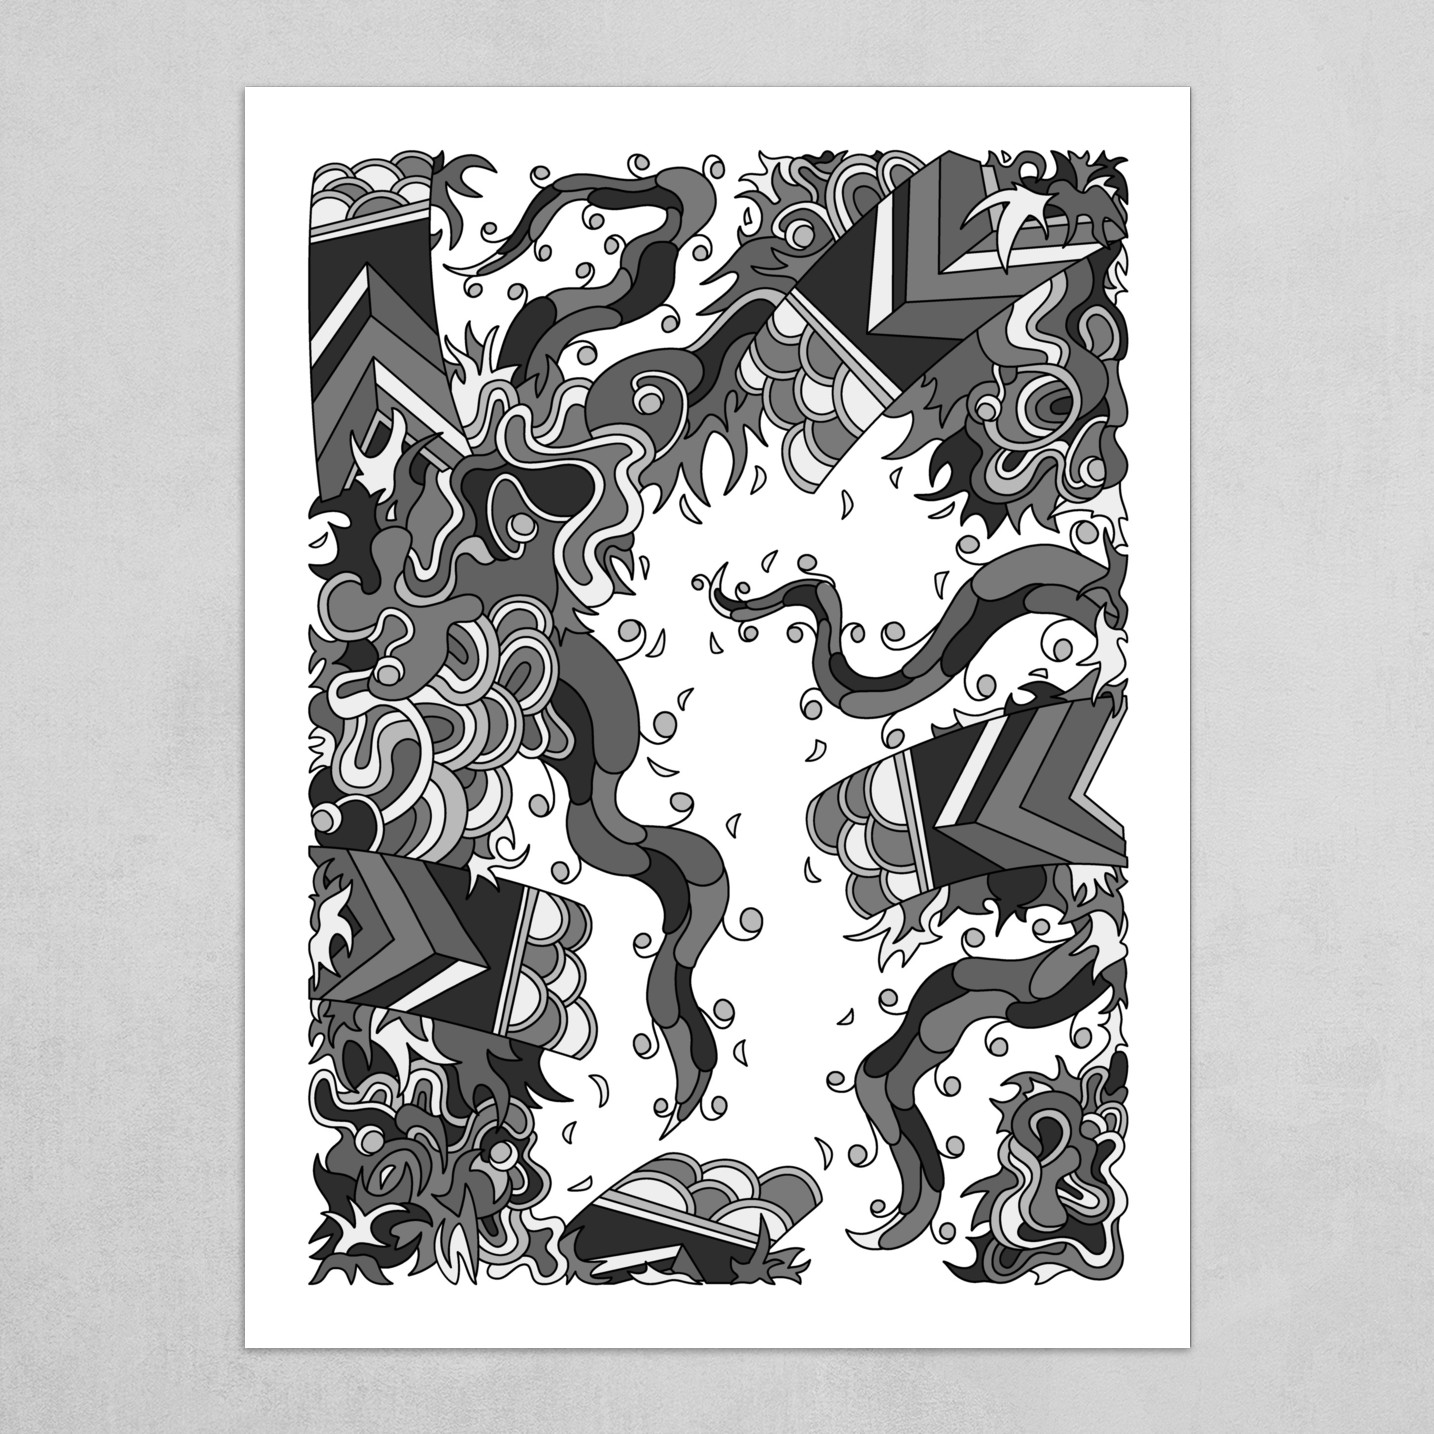 Wandering Abstract Line Art 27: Grayscale